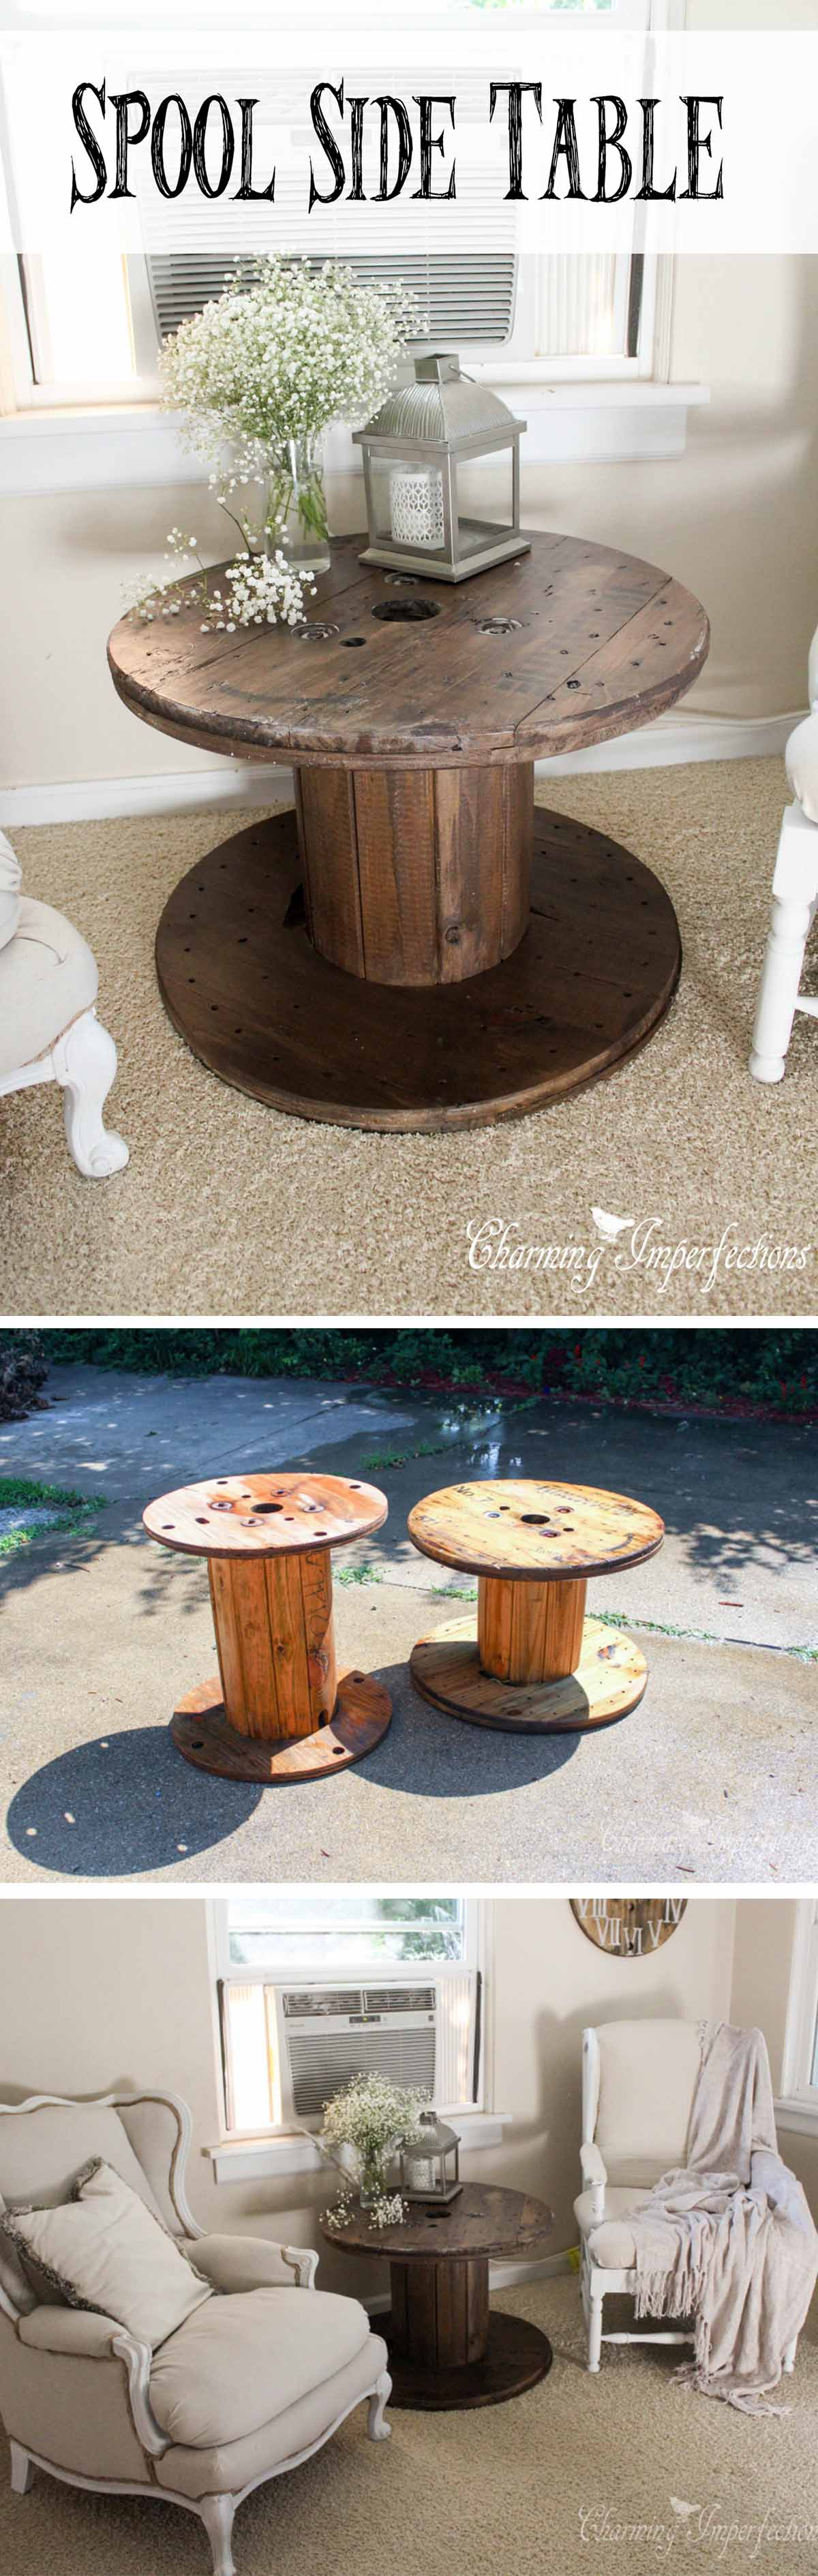 best diy farmhouse coffee table ideas and designs for homebnc accent easy industrial wooden spool dorm antique round lamp metal console coastal bathroom accessories large shades